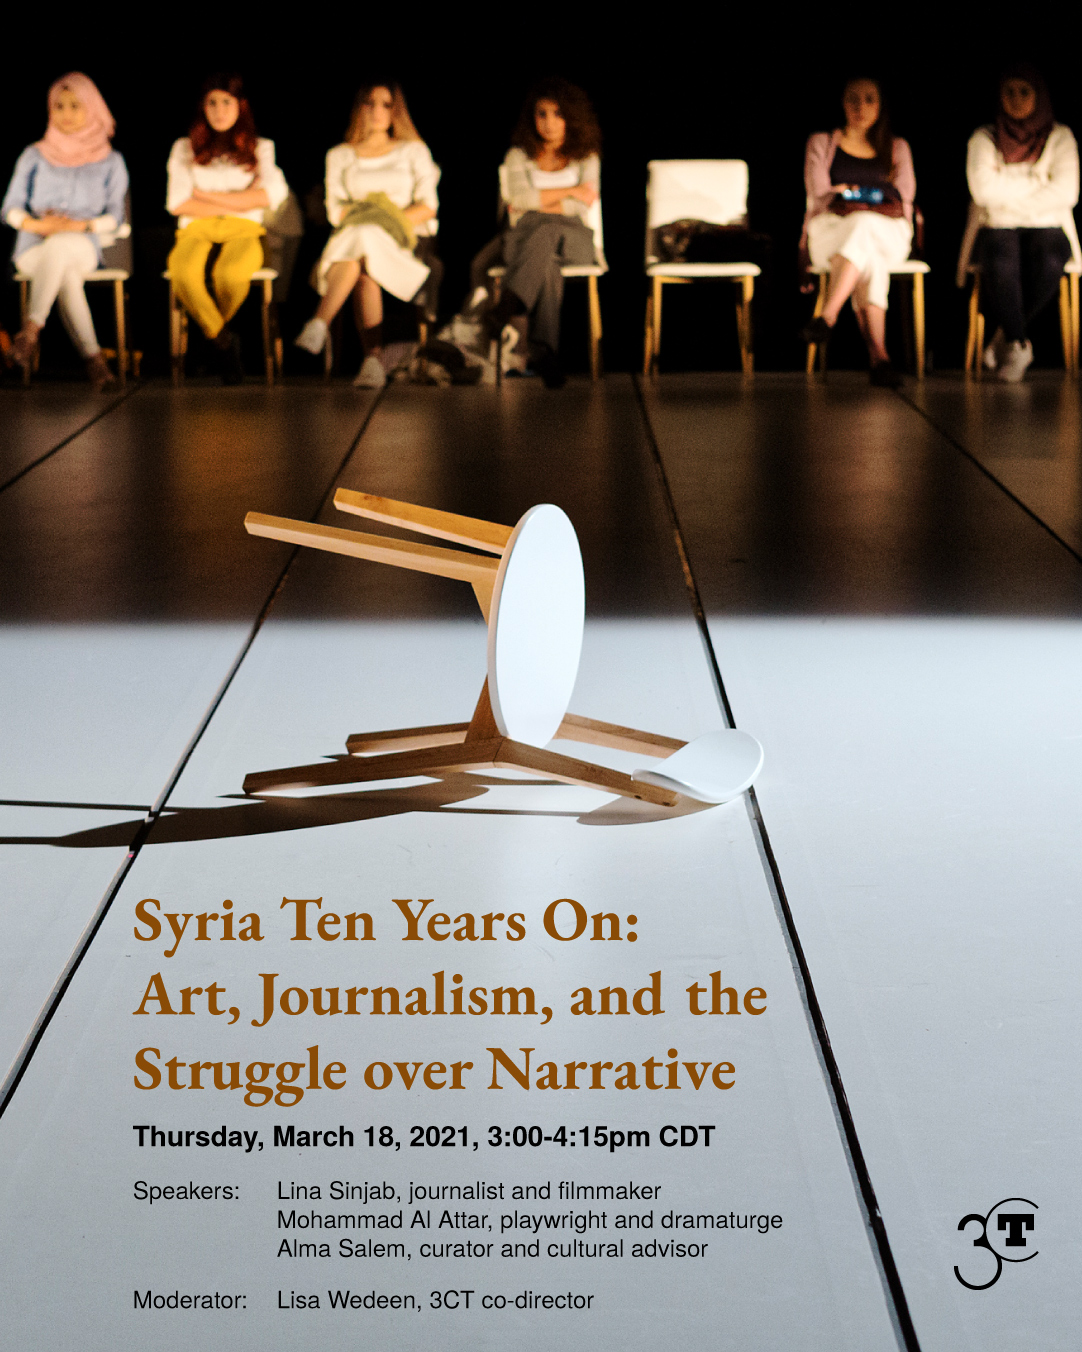 event poster featuring a photo of six seated women in a dark background looking at a well-lit toppled chair in the foreground